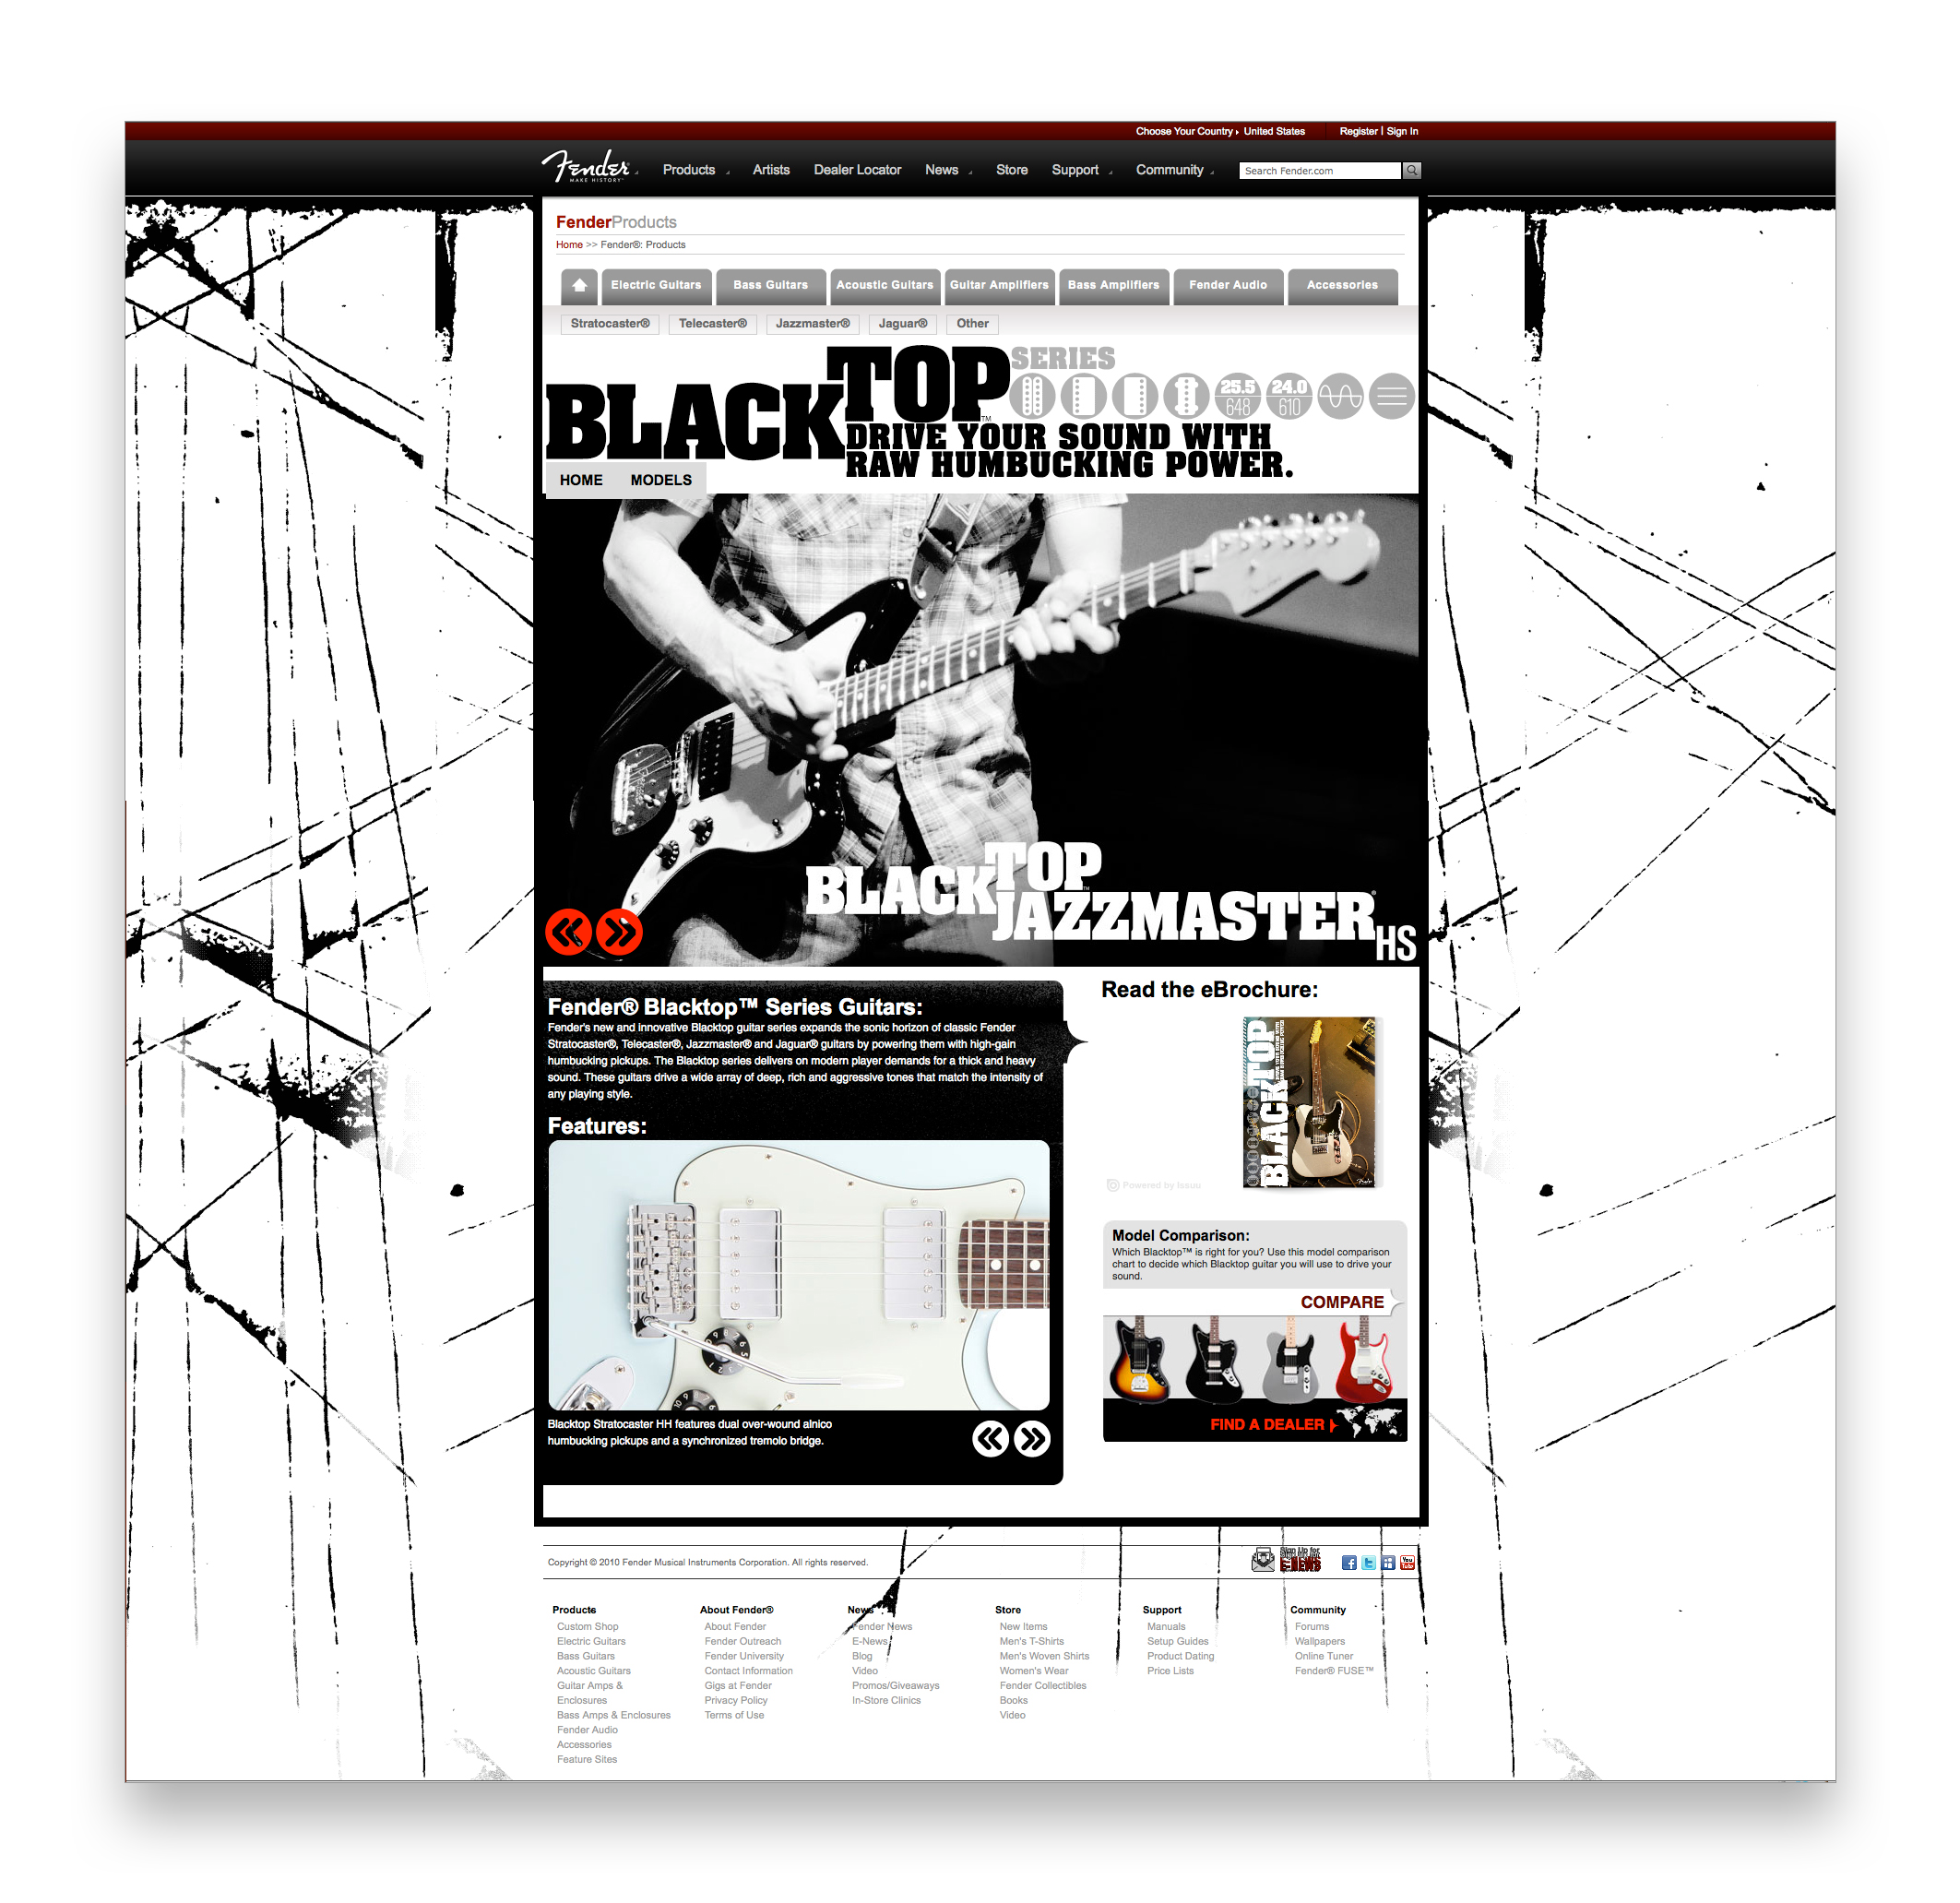 Branding elements were carried over to the Blacktop web presence as well.